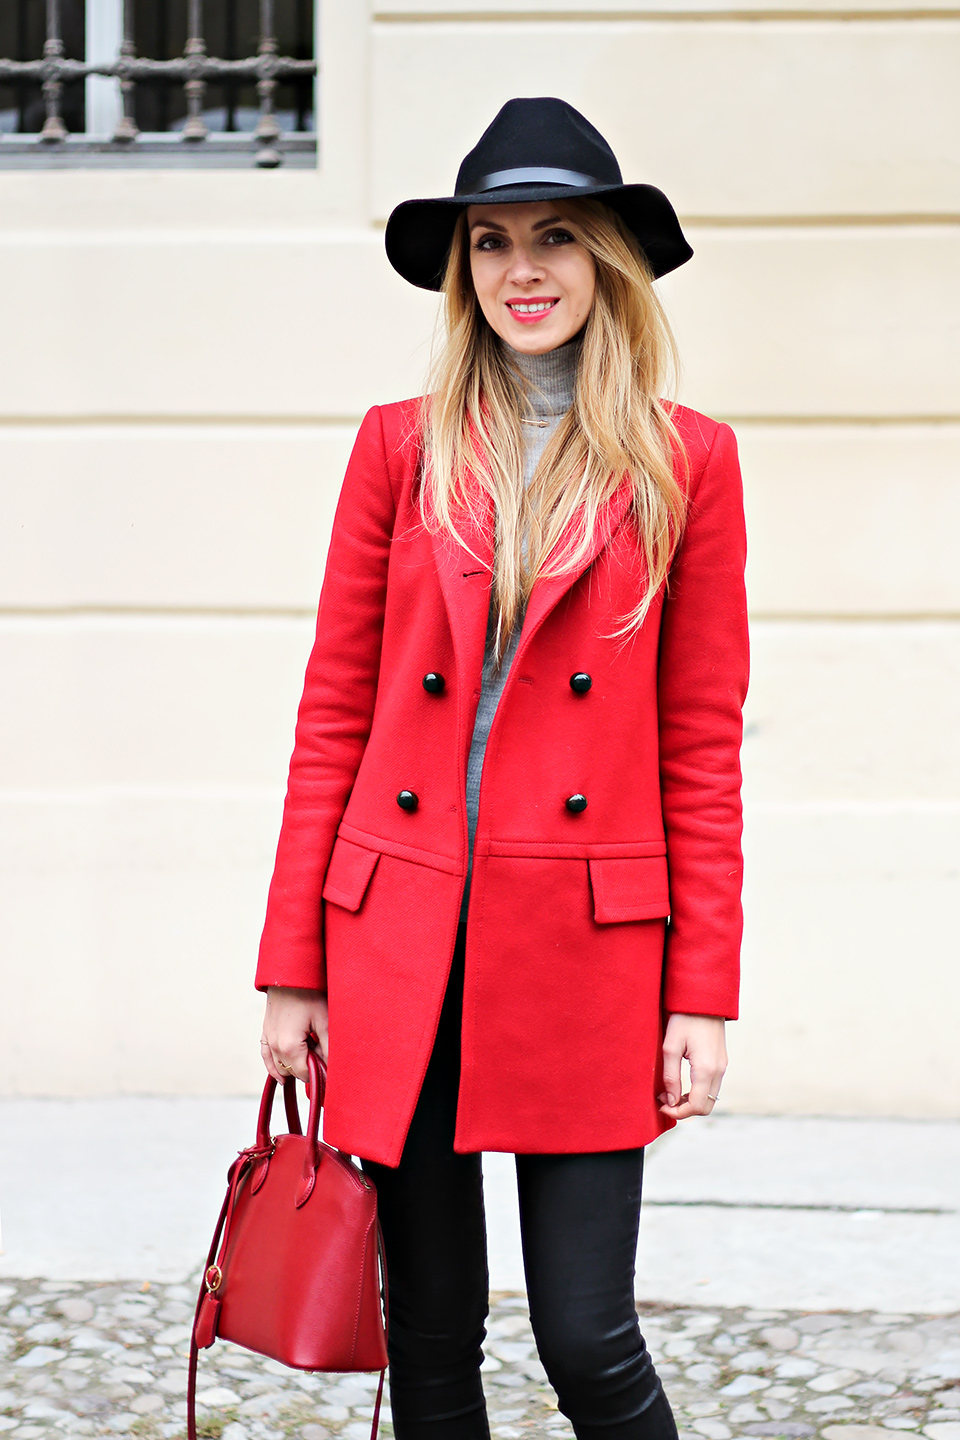 red Zara coat, black fedora hat, fall outfit, fashion blog